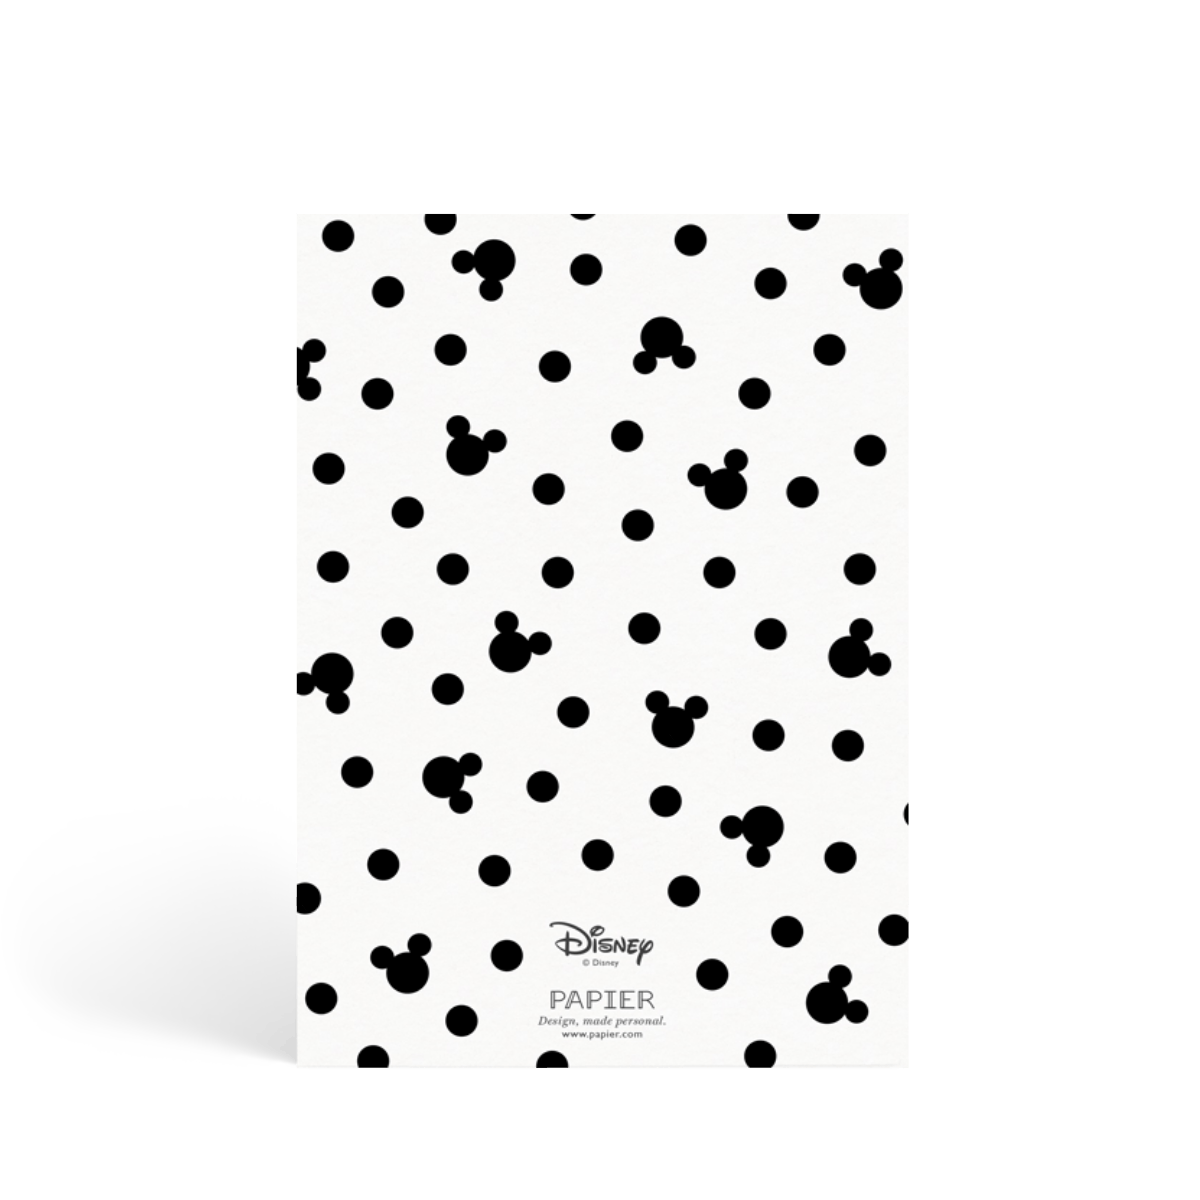 Https%3a%2f%2fwww.papier.com%2fproduct image%2f57324%2f5%2fpolka dot mickey mouse 13770 back 1542370614.png?ixlib=rb 1.1